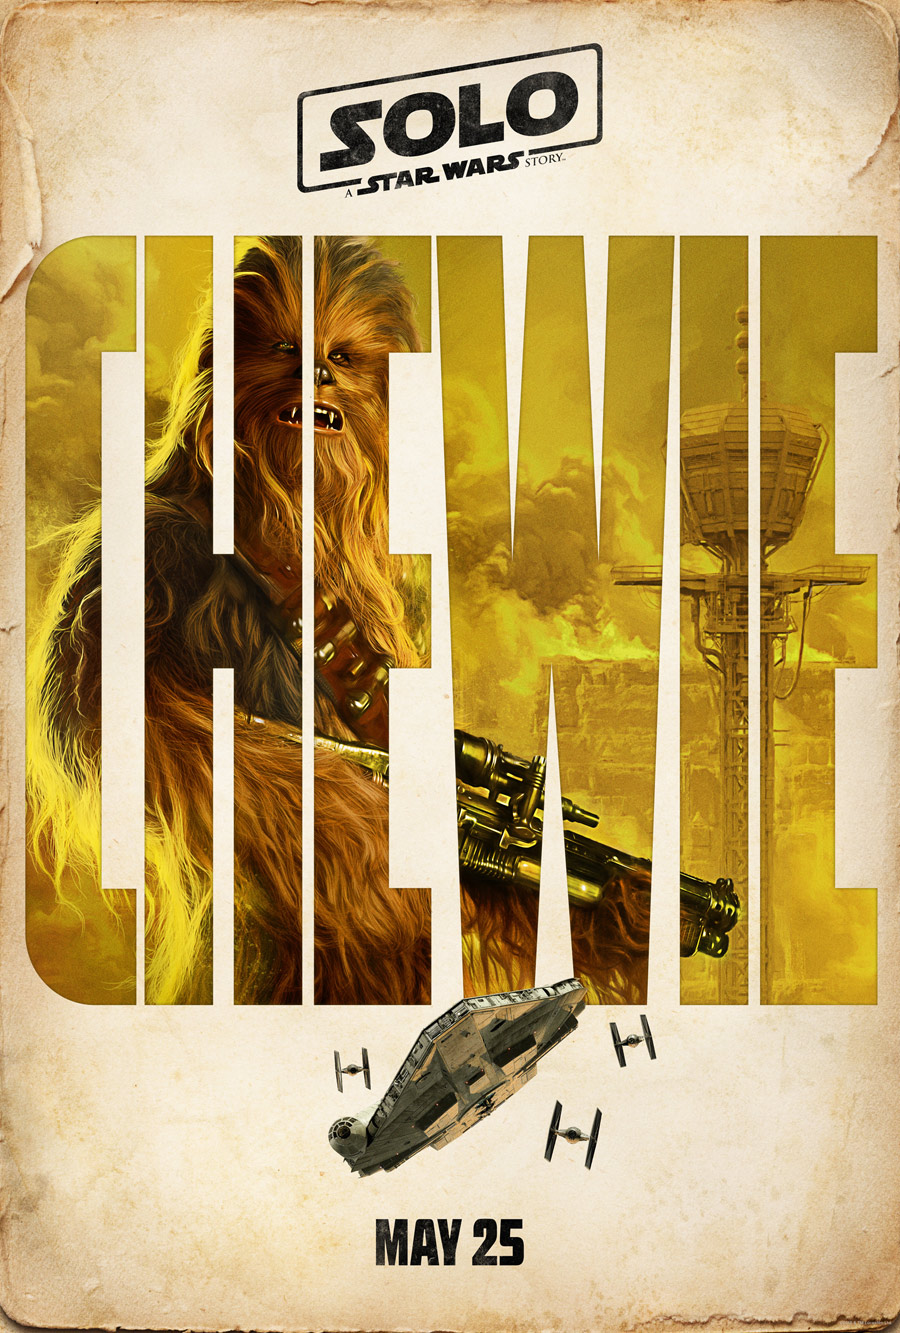 Chewbacca character poster